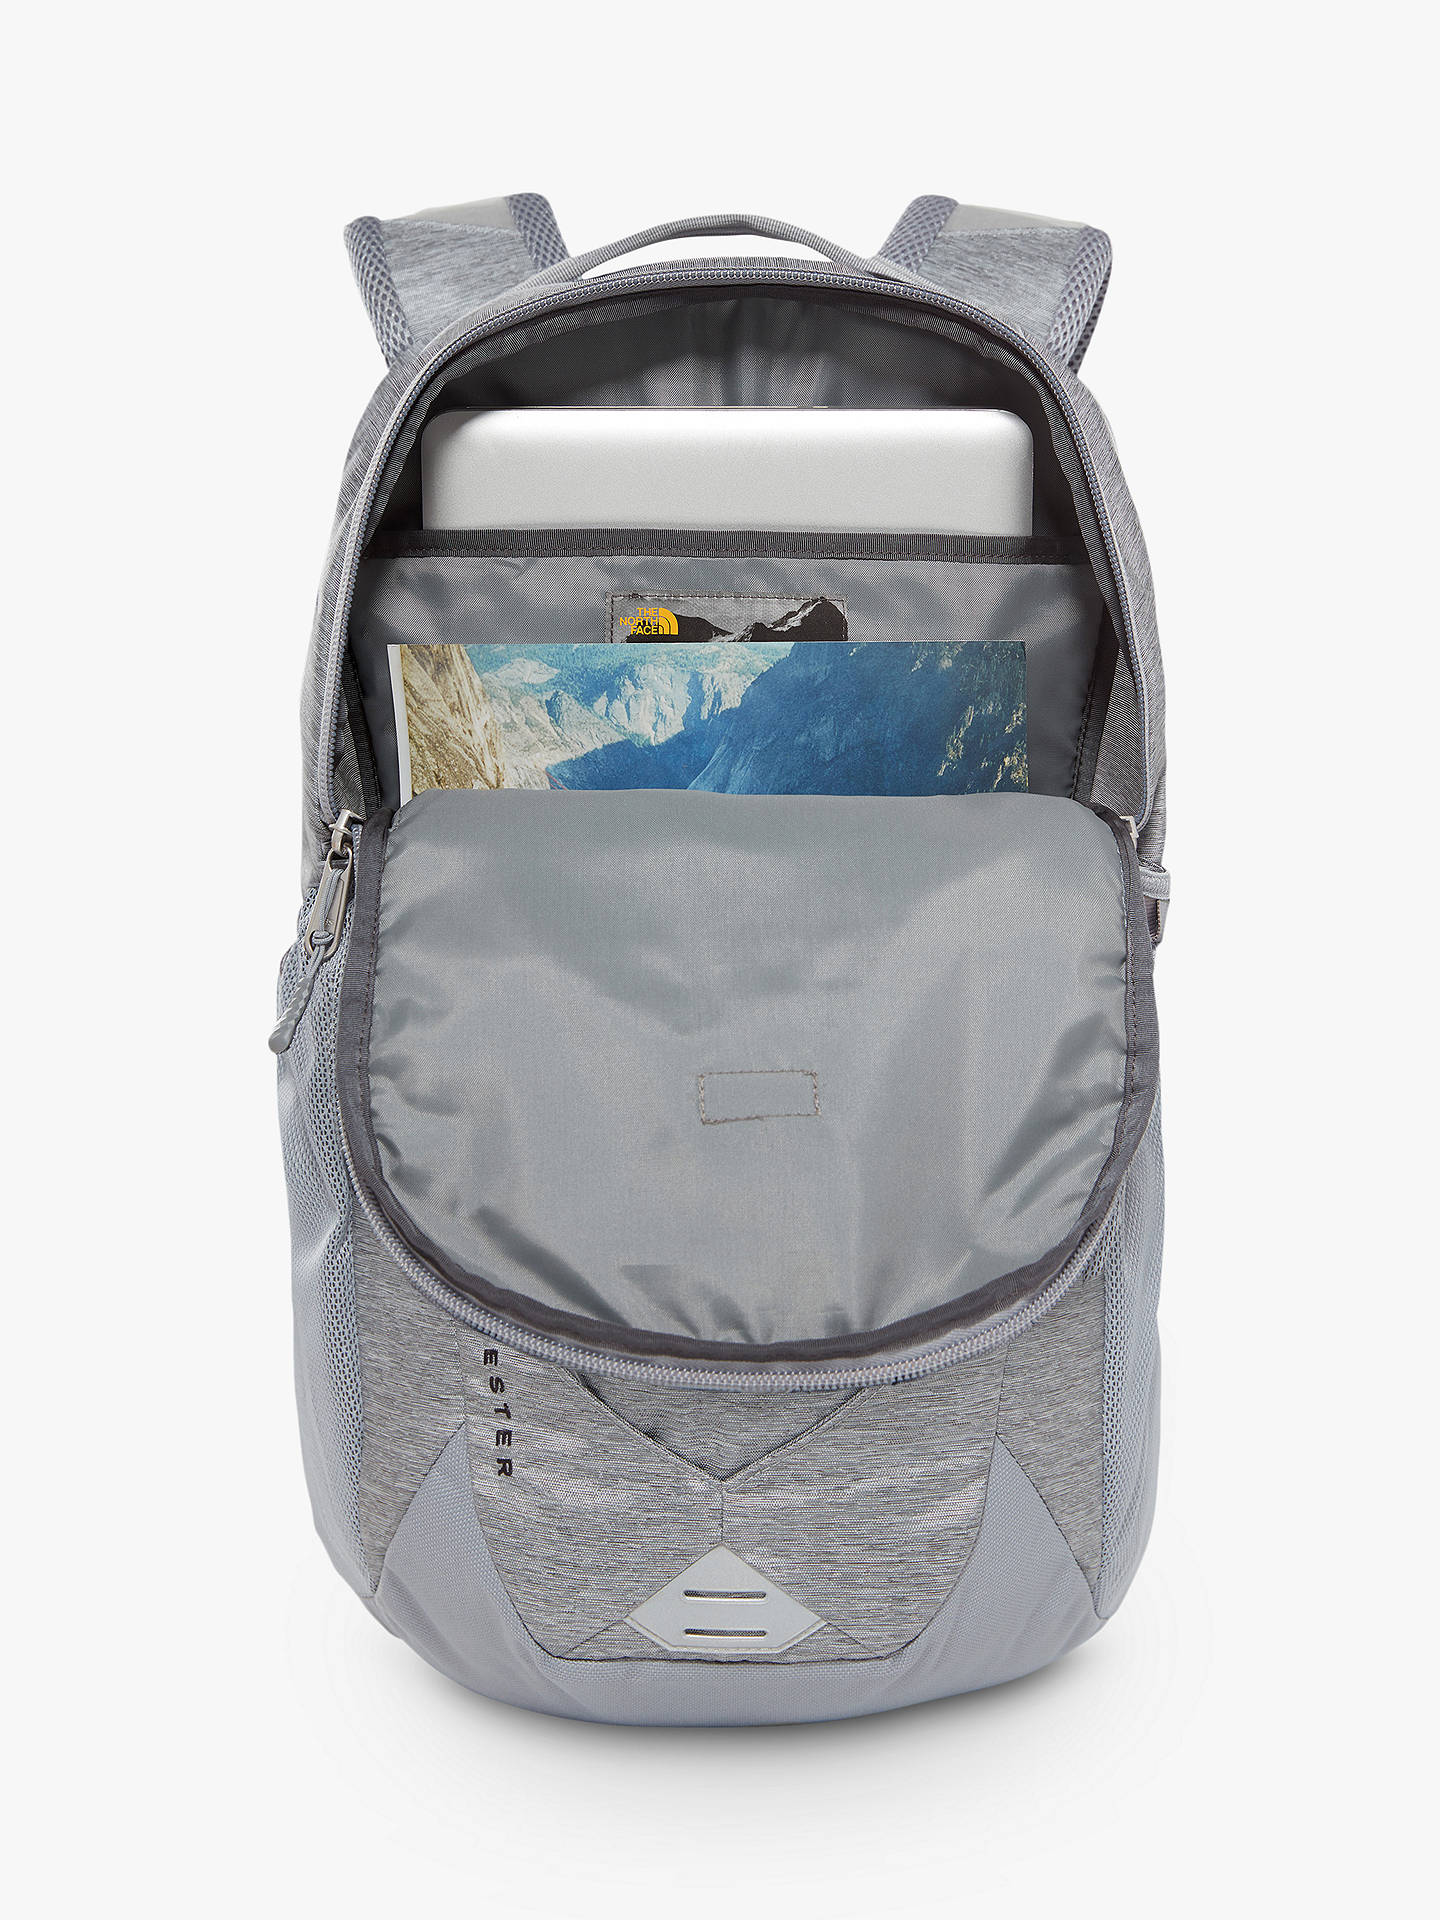 7c5d03cea The North Face Jester Backpack, Grey